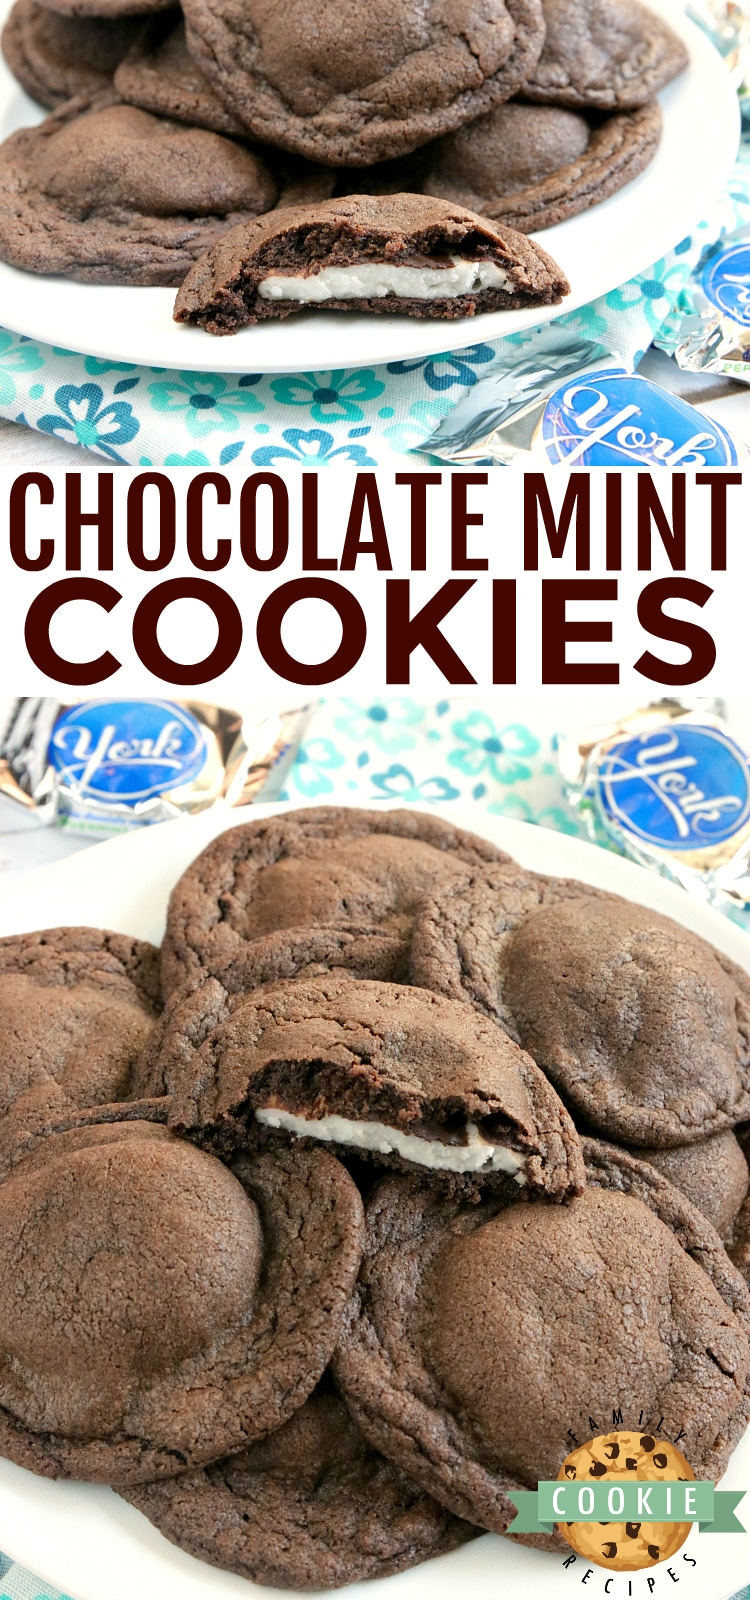 Chocolate Mint Cookies are soft and chewy chocolate cookies that have a York peppermint patty right in the middle. This easy cookie recipe is the perfect balance of chocolate and mint!